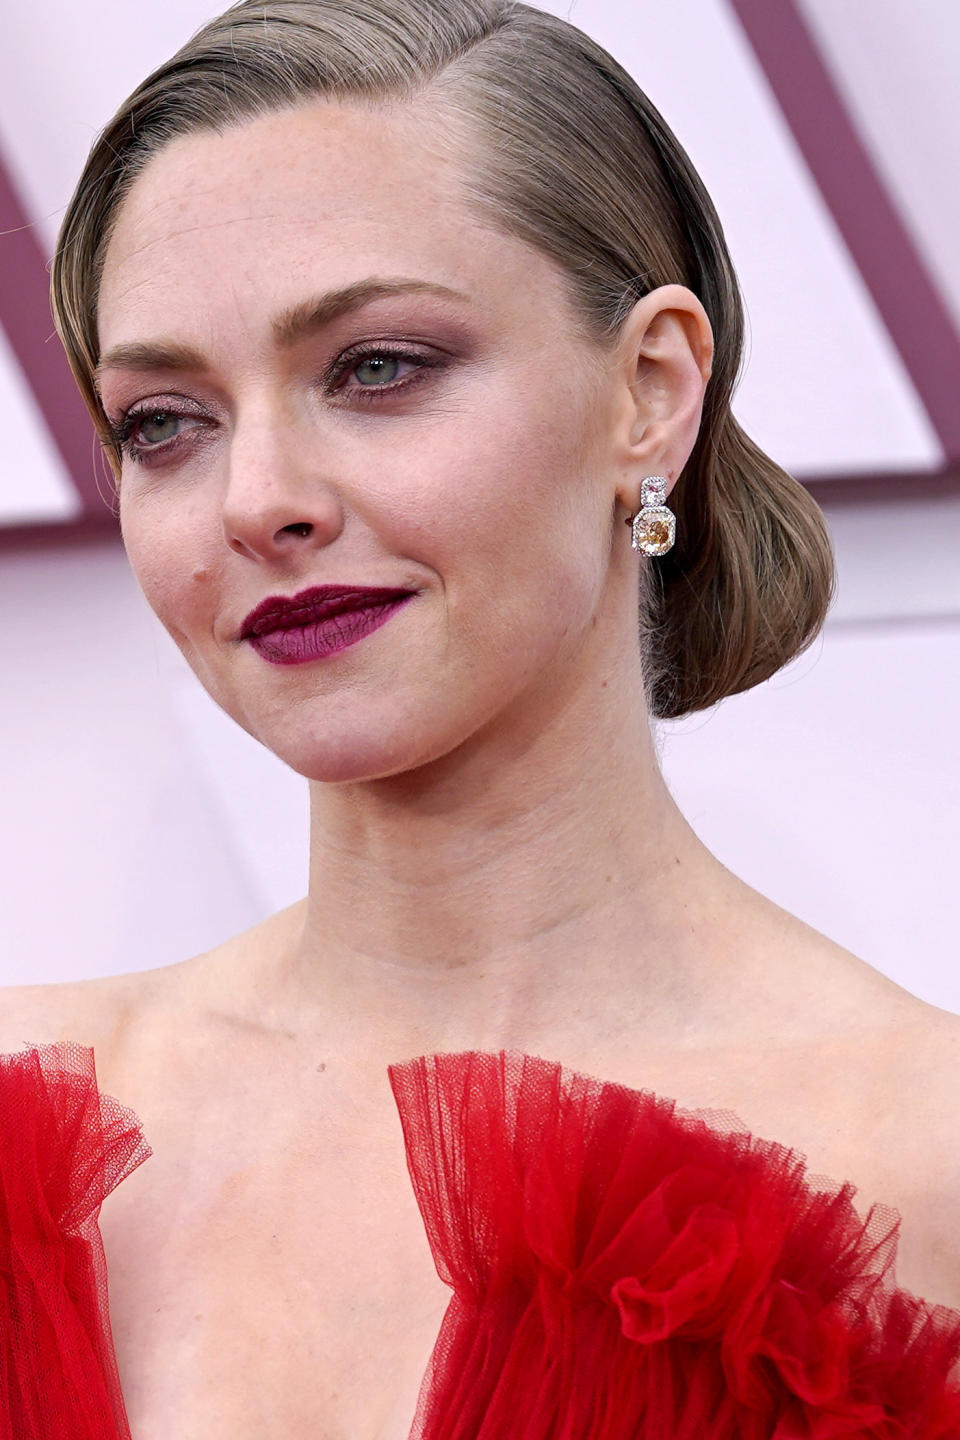 LOS ANGELES, CALIFORNIA – APRIL 25: Amanda Seyfried, earing detail, attends the 93rd Annual Academy Awards at Union Station on April 25, 2021 in Los Angeles, California. (Photo by Chris Pizzello-Pool/Getty Images)